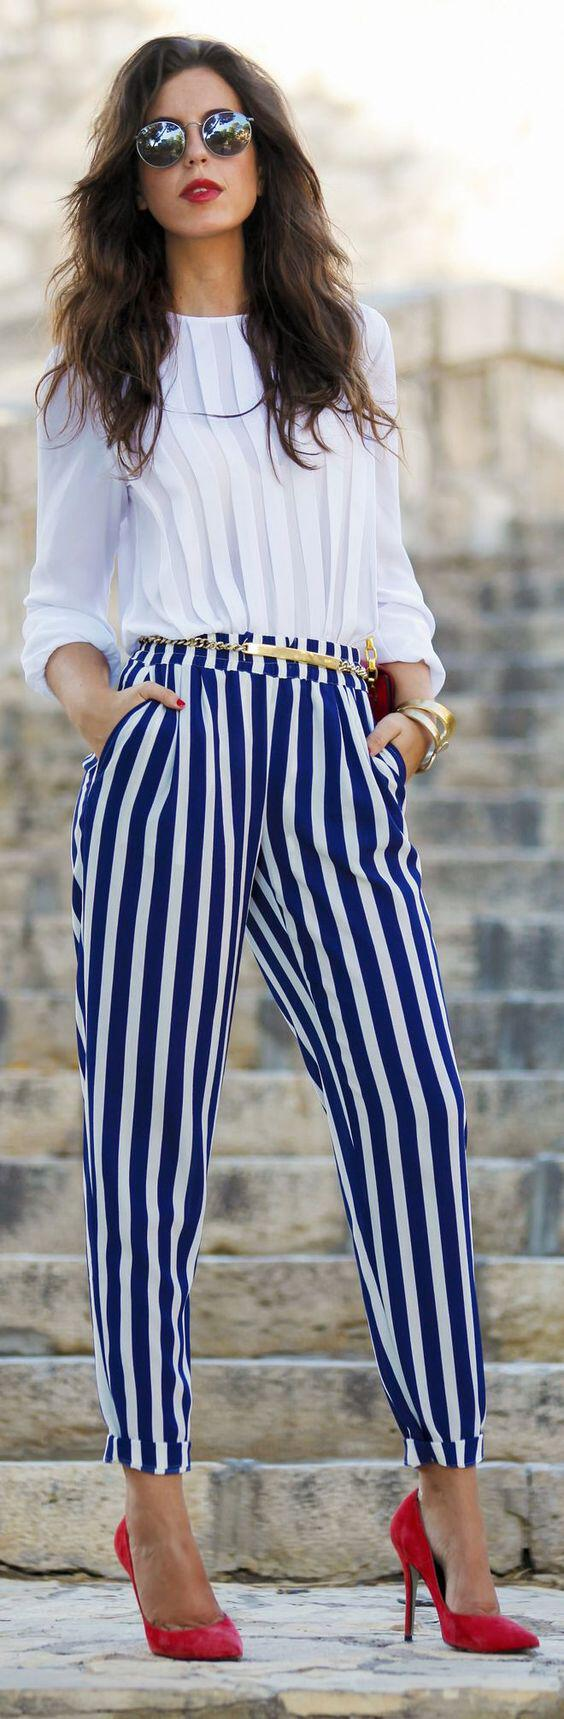 5 ways to wear striped pants and looking like like wearing pajamas - 5 ways to wear striped pants and not look like wearing pajamas